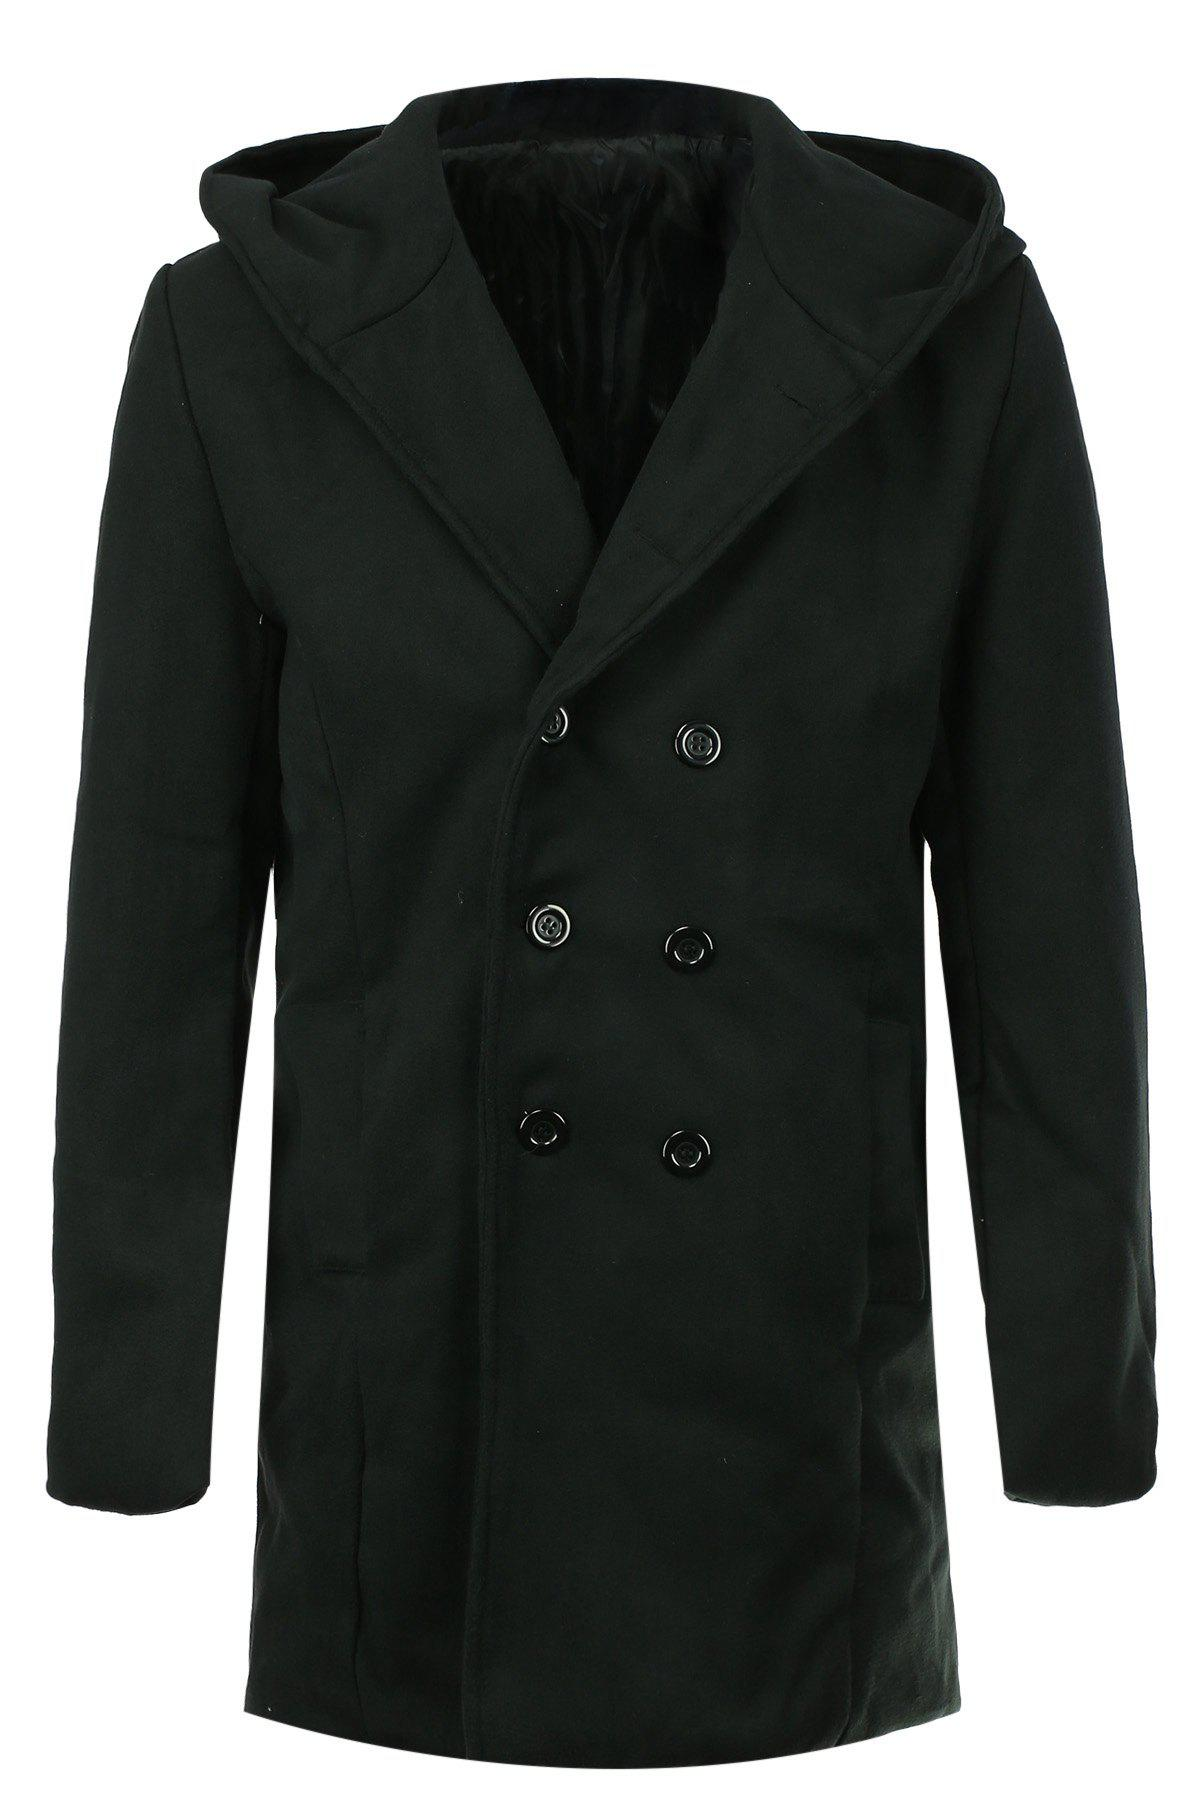 Laconic Hooded Multi-Button Back Slit Solid Color Long Sleeves Loose Fit Men's Thicken Peacoat - BLACK M